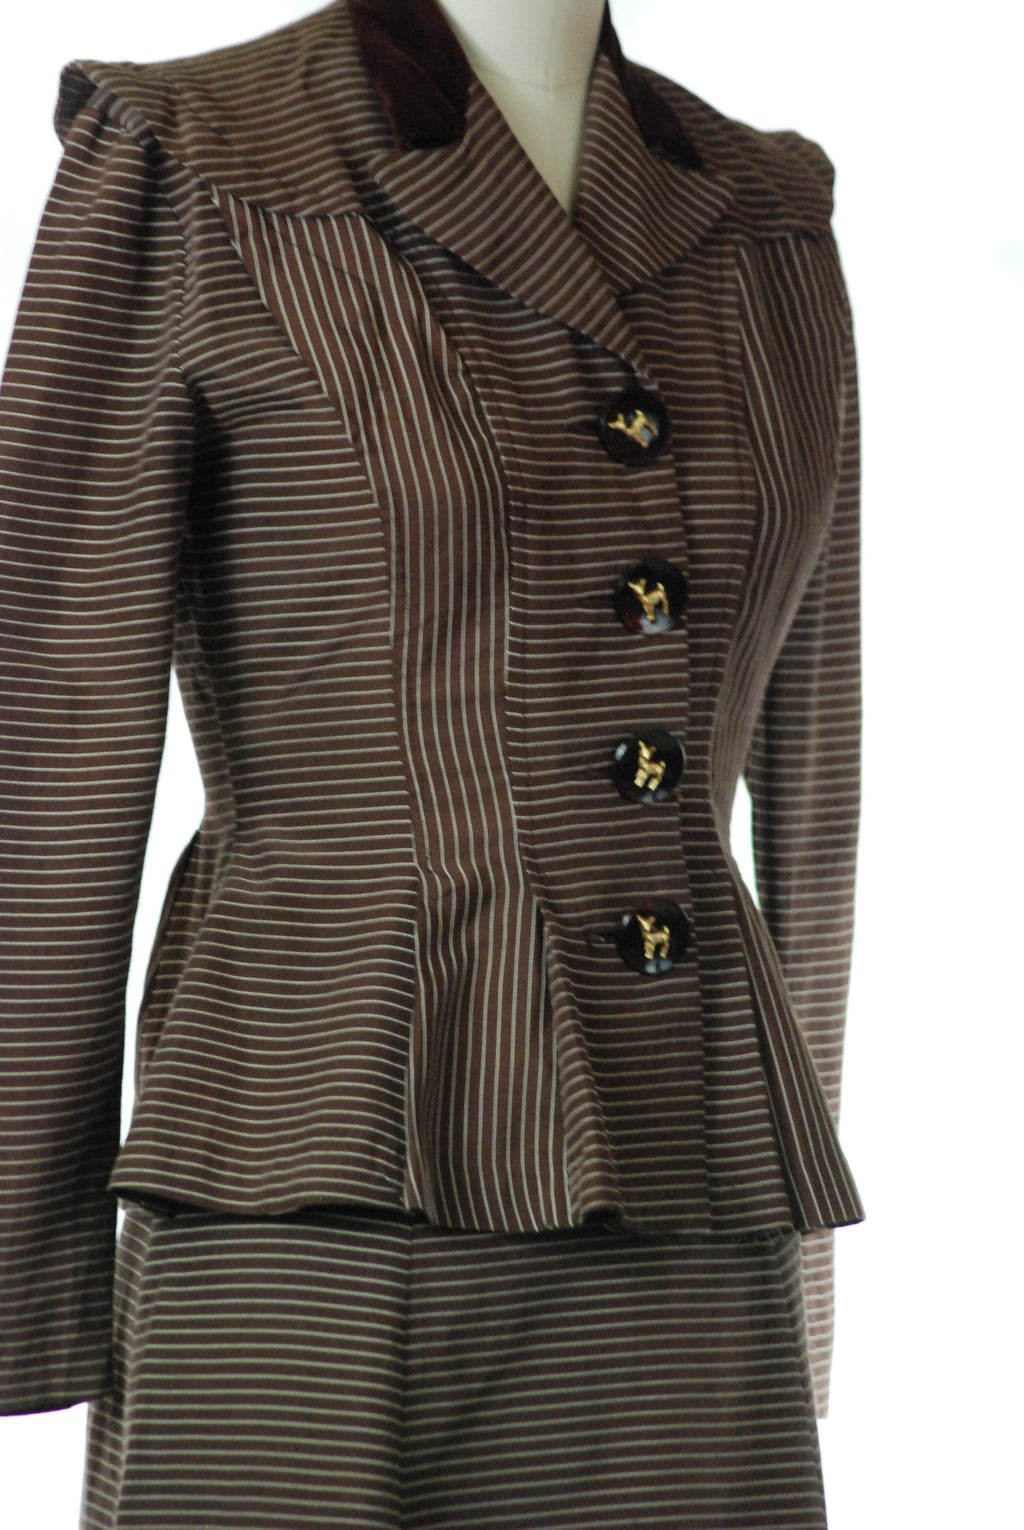 Charming 1930s Dark Brown Striped Suit with Deer Buttons